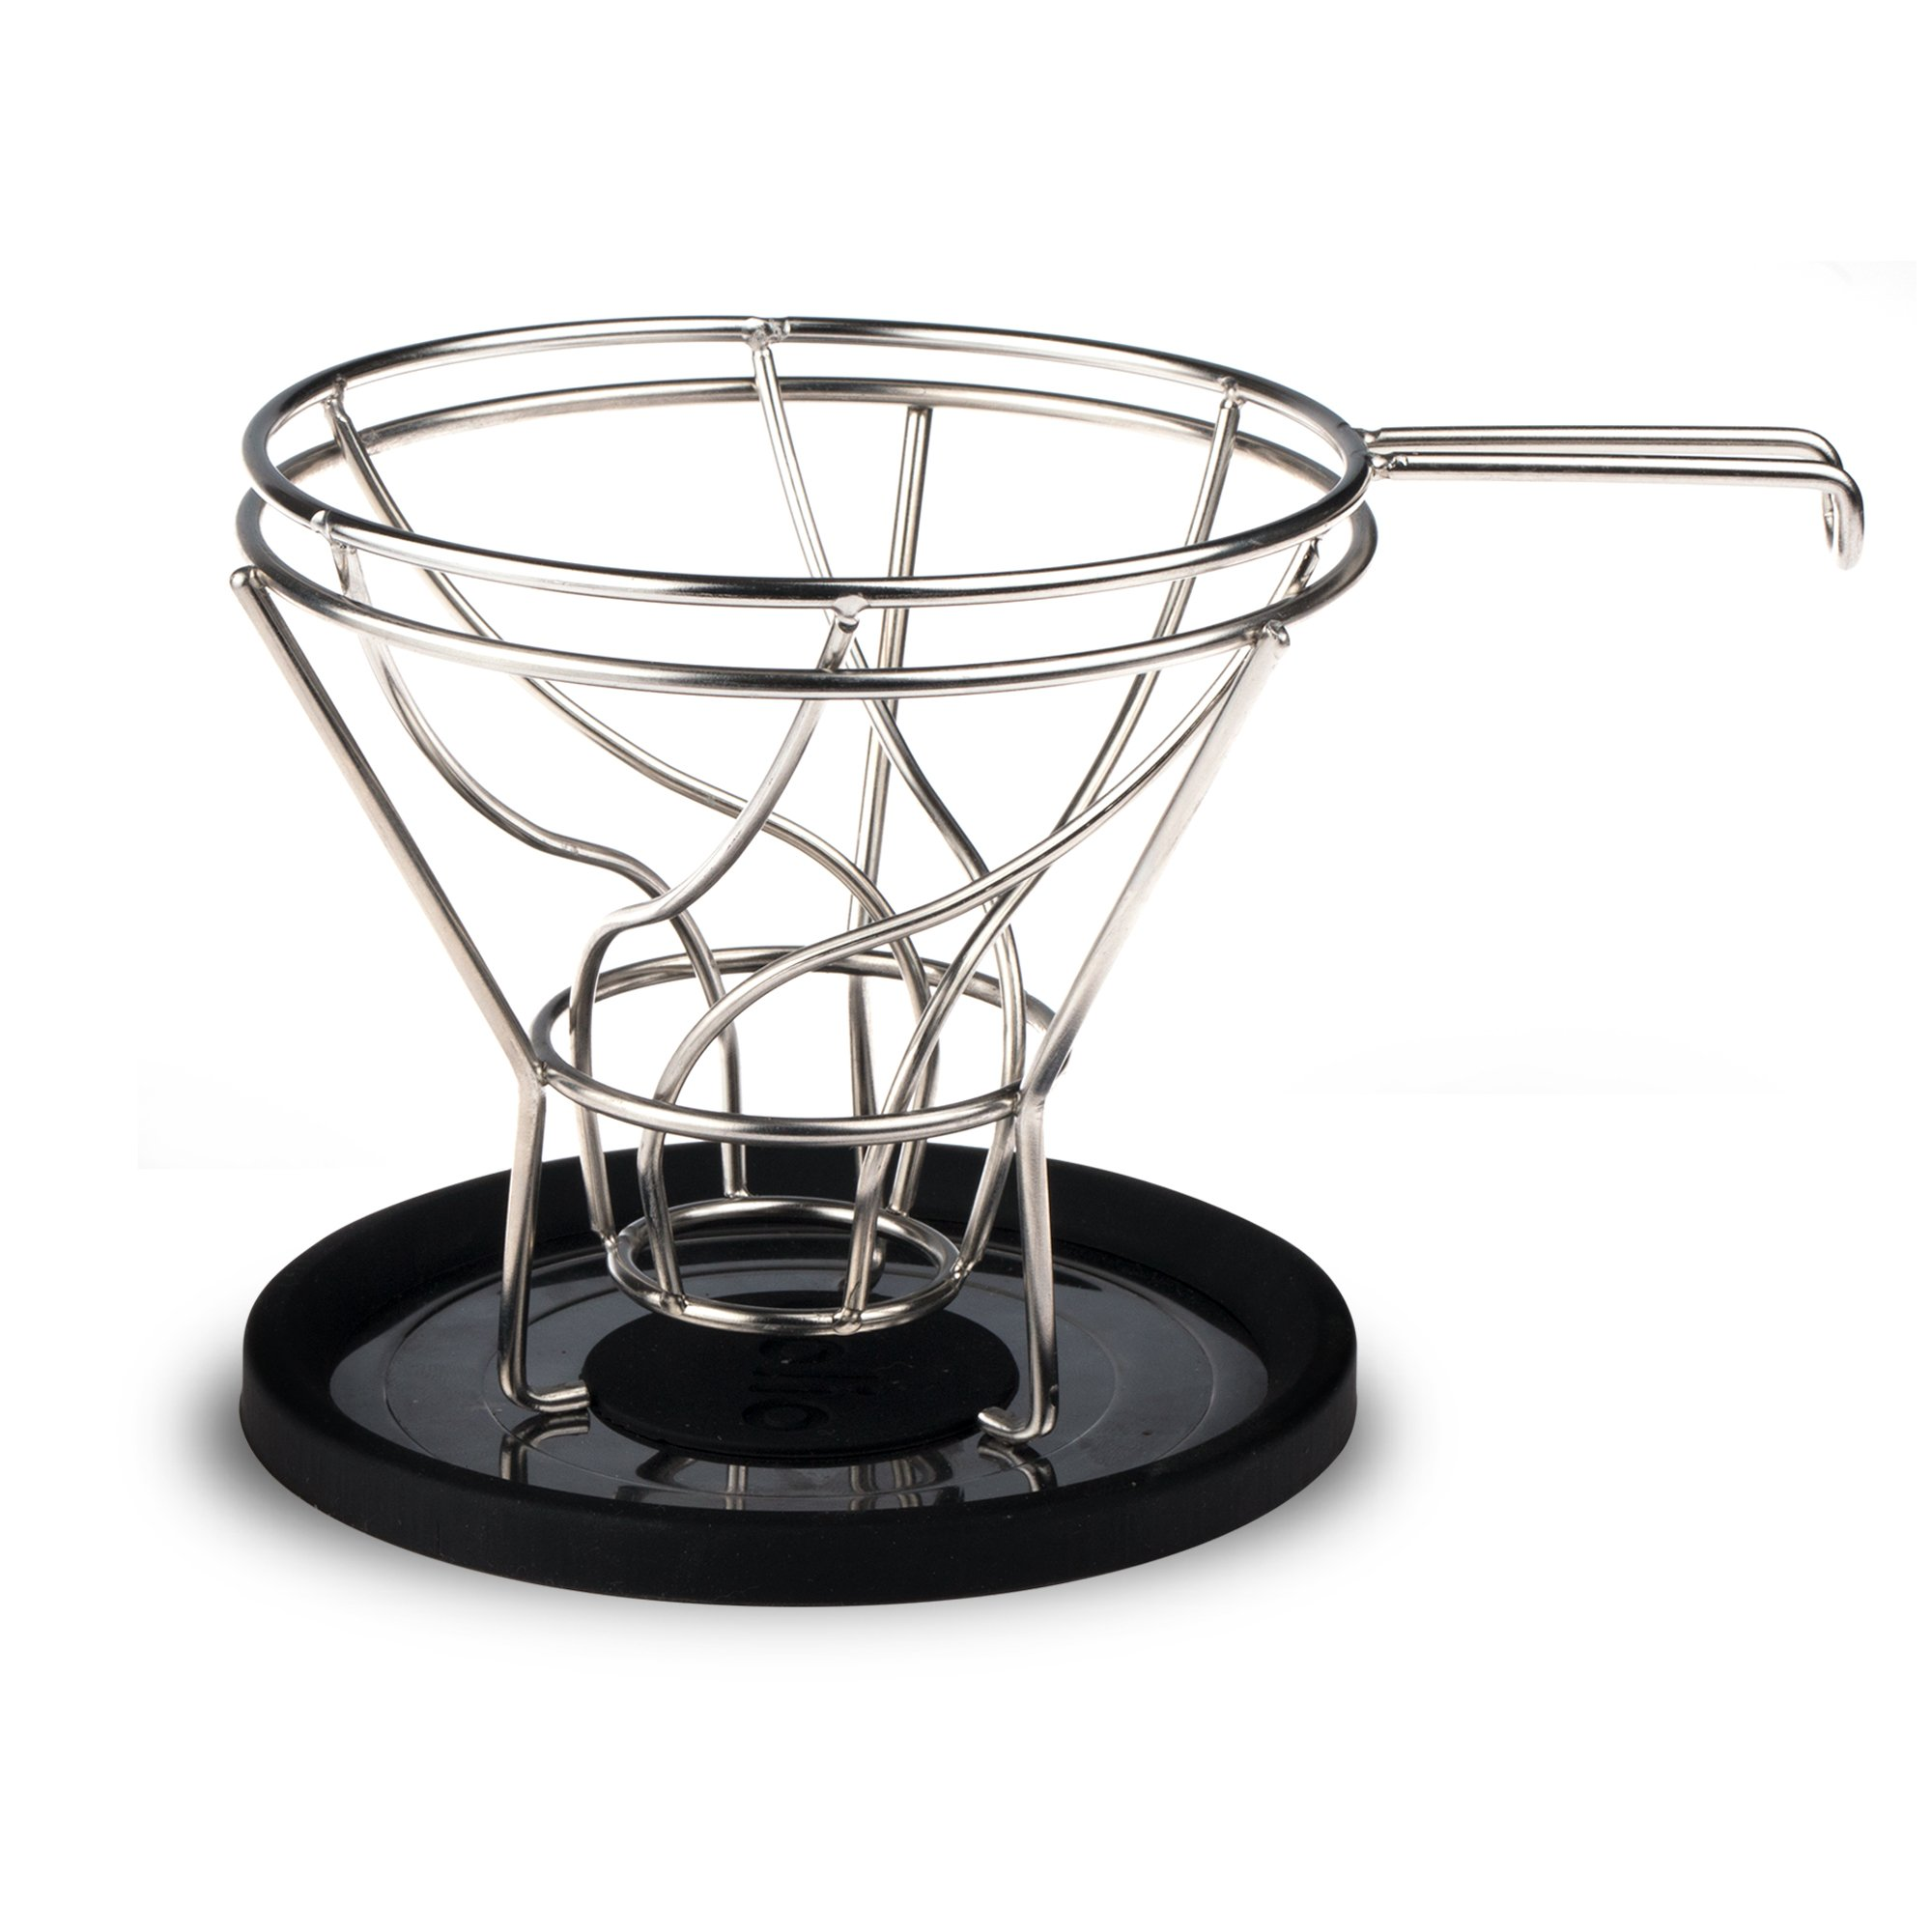 Pour Over Stainless Steel Coffee Cone Shaped Basket Filter Dripper and Cradle Stand used with Popular V60 Filters like Melitta, Cuisinart, Hario, Chemex – Maximum Flavor Extraction by Bolio (Vortex 2) by Bolio